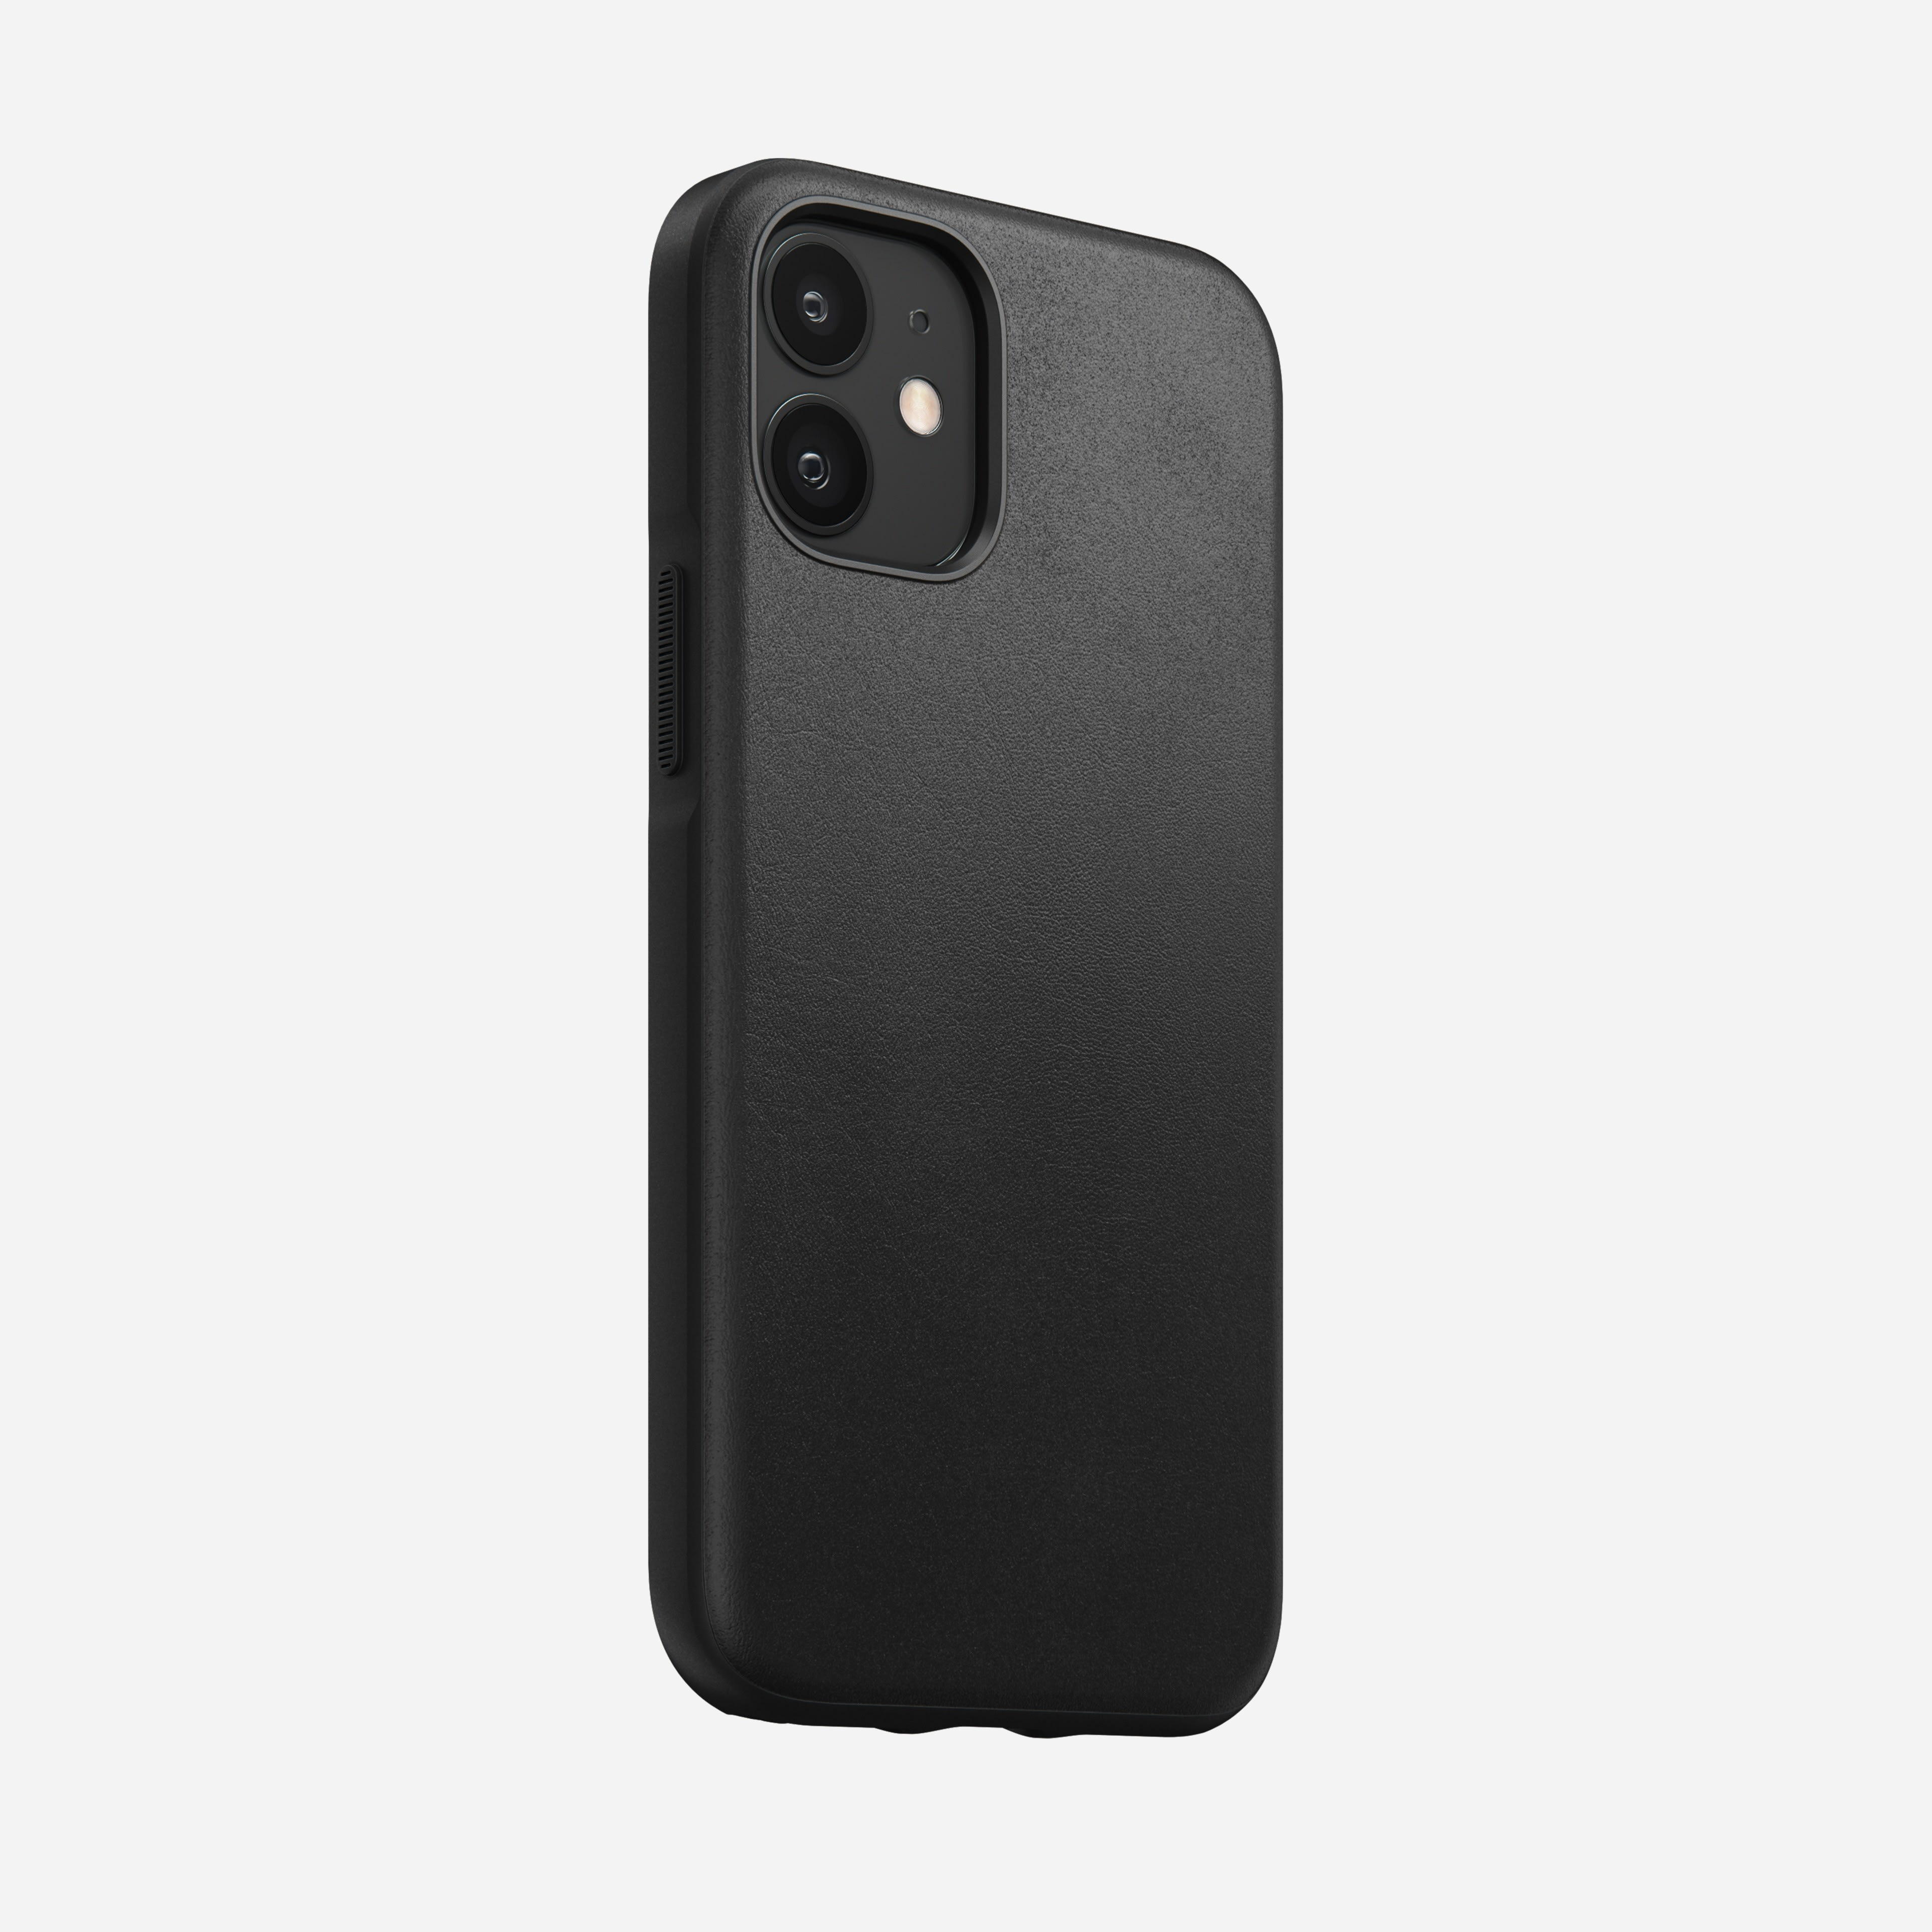 Rugged case horween leather black iphone 12 mini